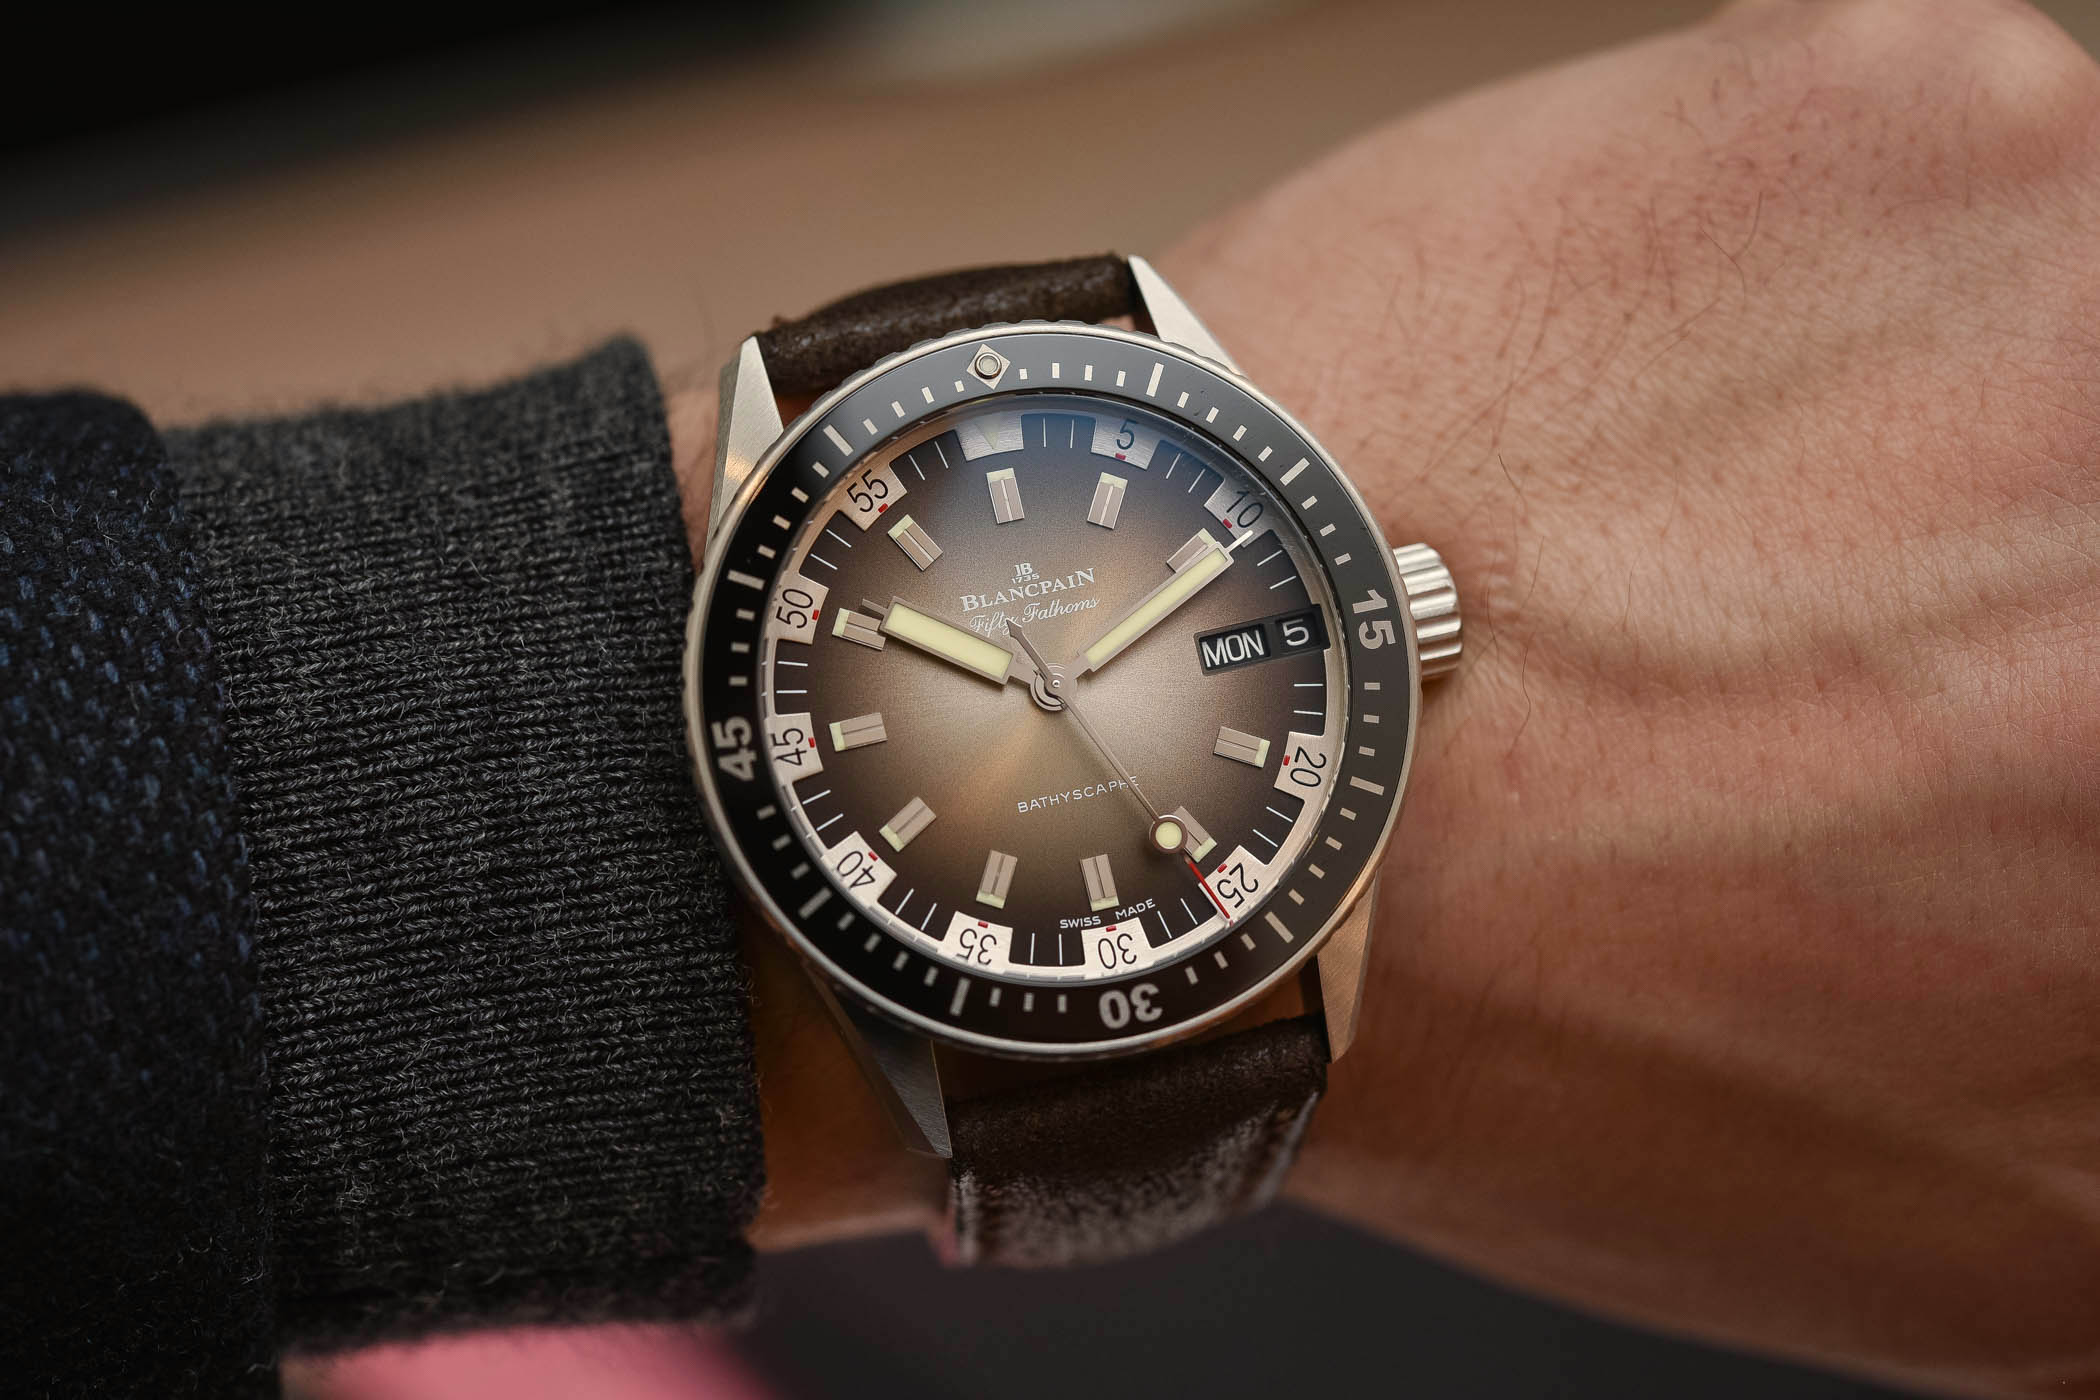 Blancpain Fifty-Fathoms Bathyscaphe Day-Date 70s - Buying Guide Brown Watches